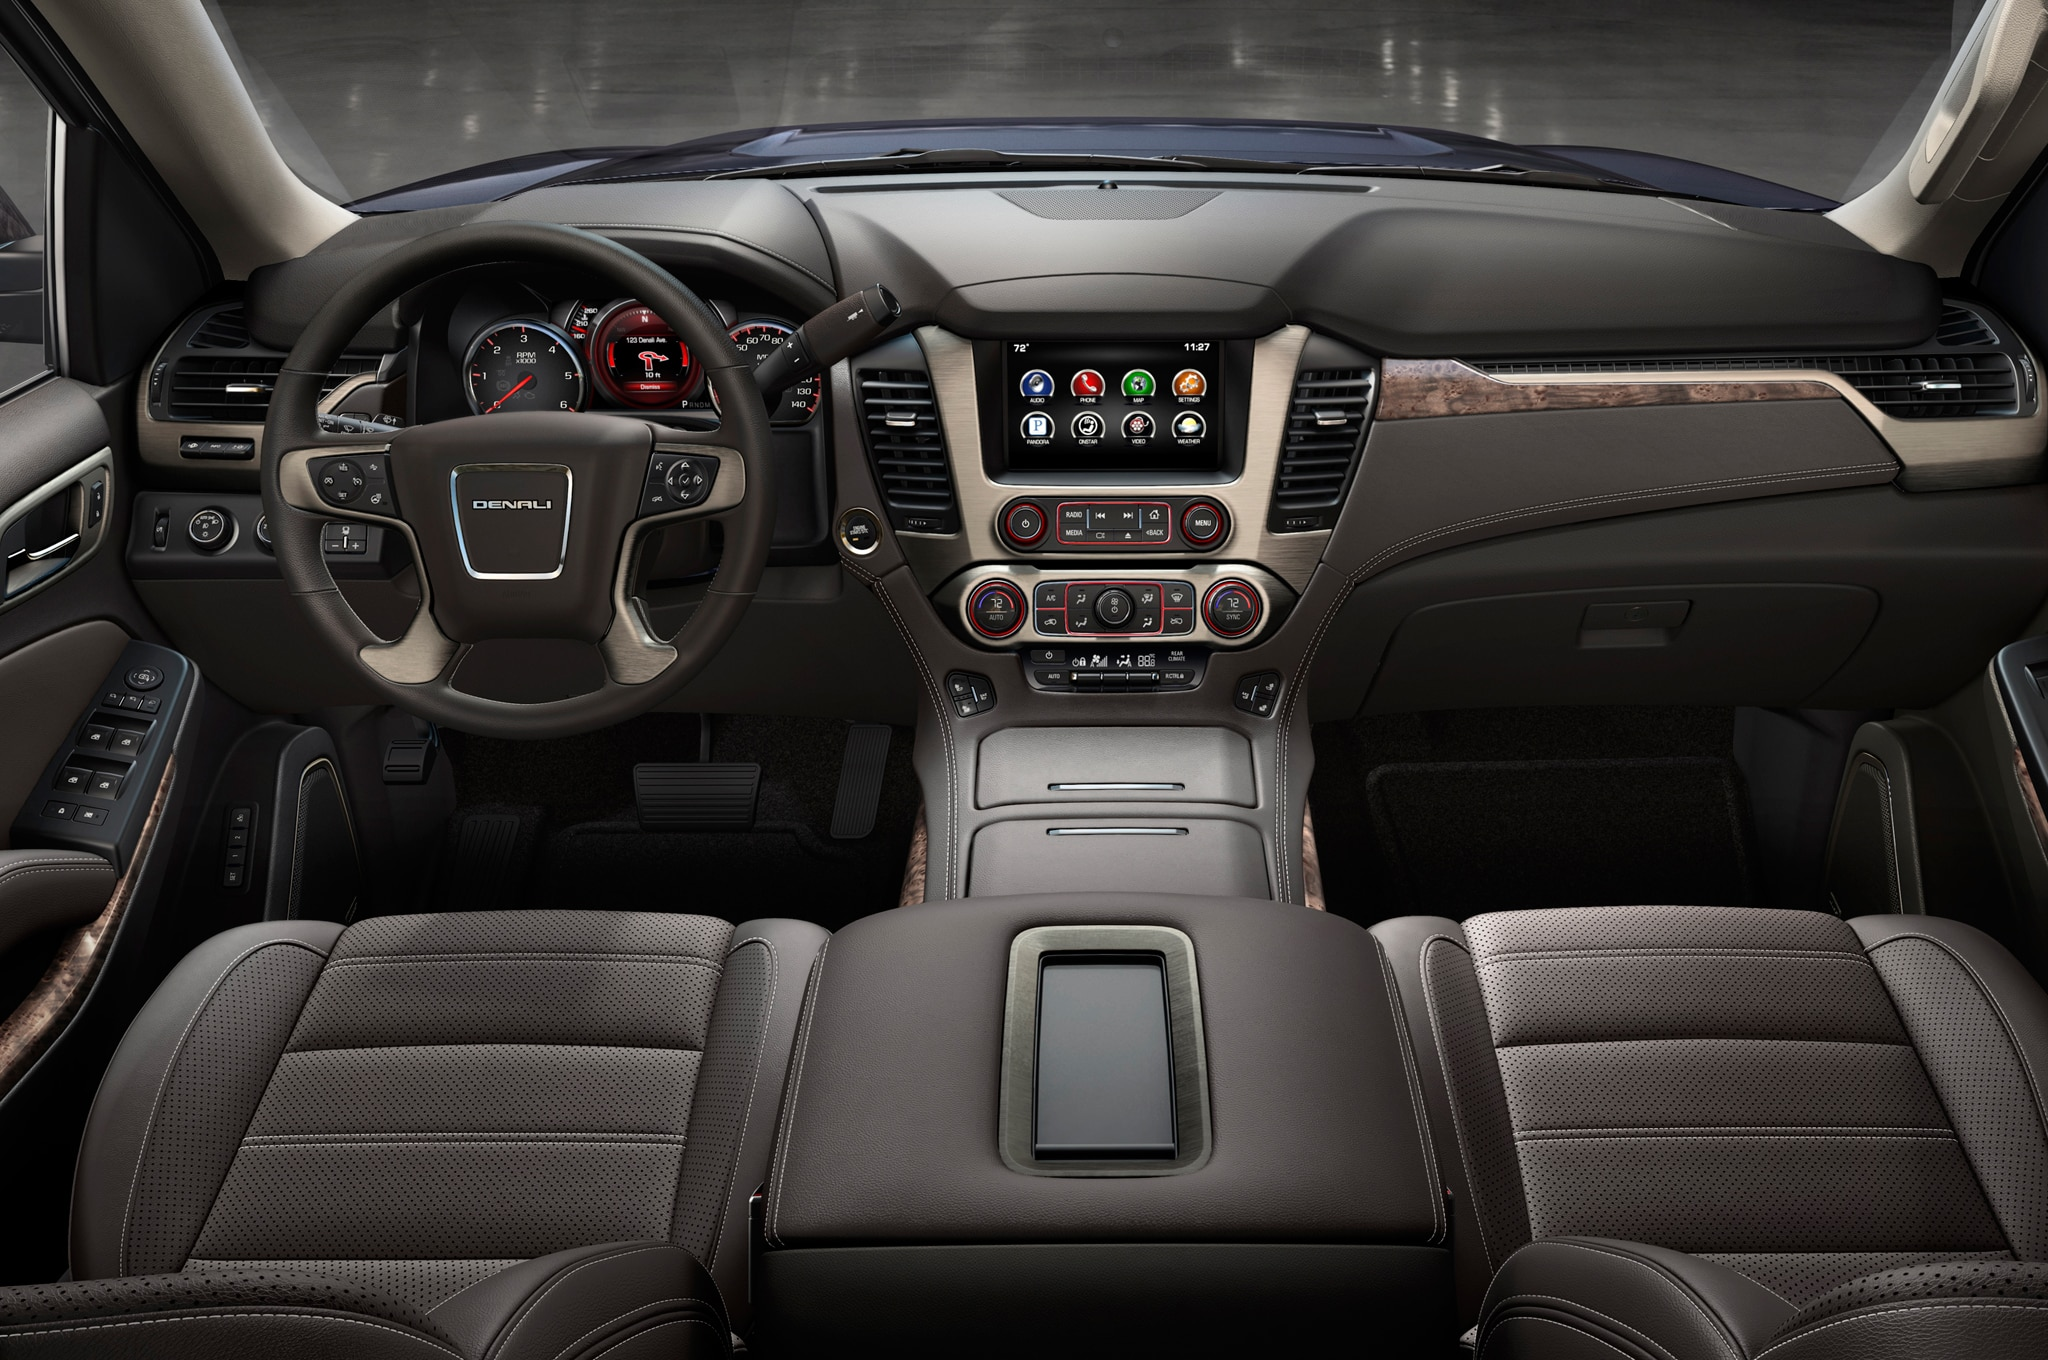 2015 yukon denali xl - Show More